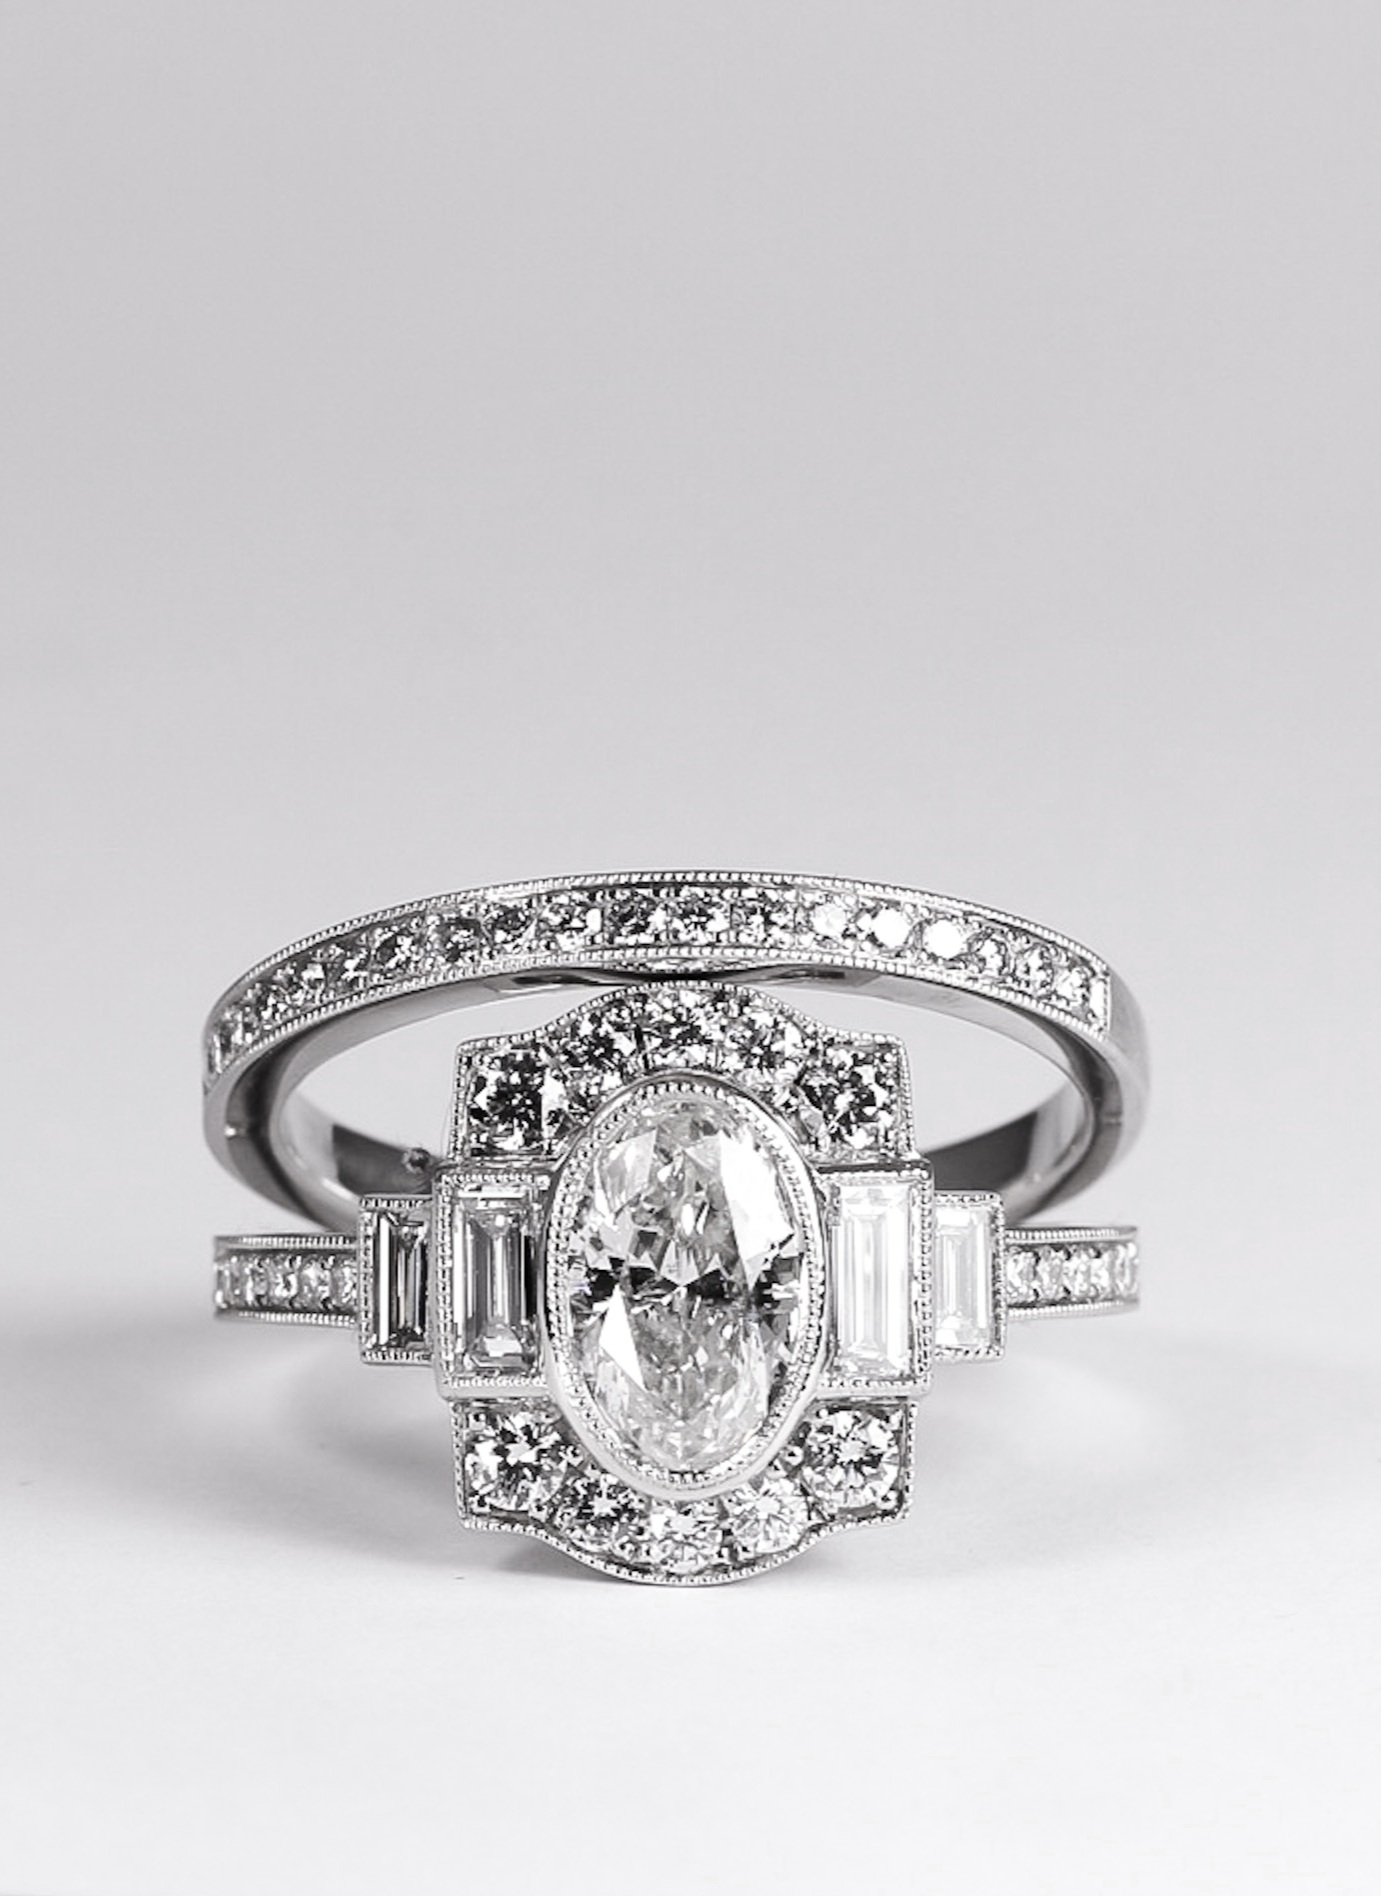 Platinum mounted oval diamond set Art Deco style cluster ring with baguette diamond stepped shoulders . Made in Chichester, England.